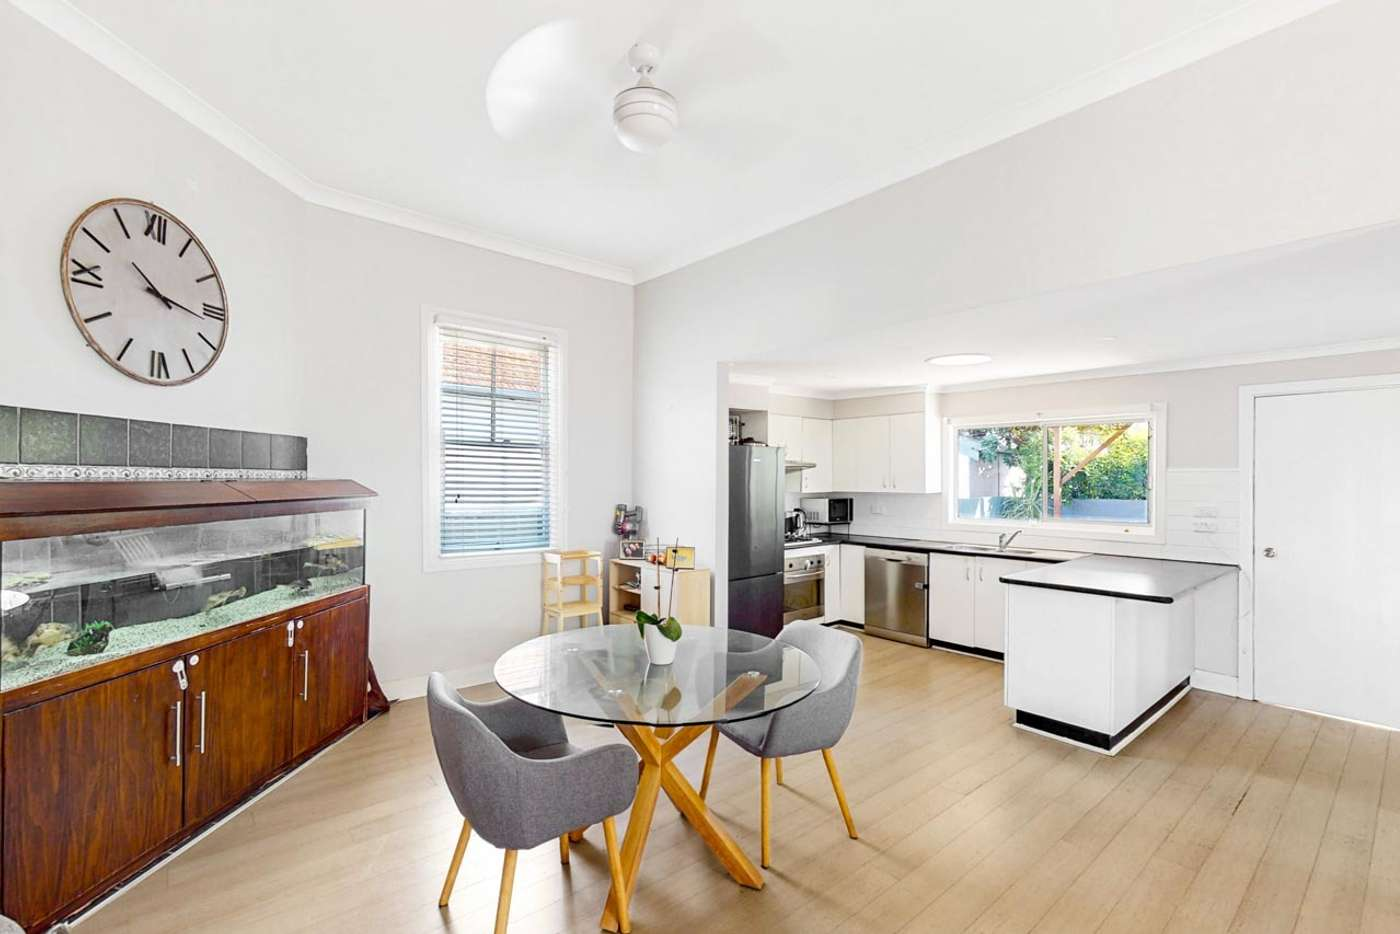 Sixth view of Homely house listing, 5 Hobart Road, New Lambton NSW 2305